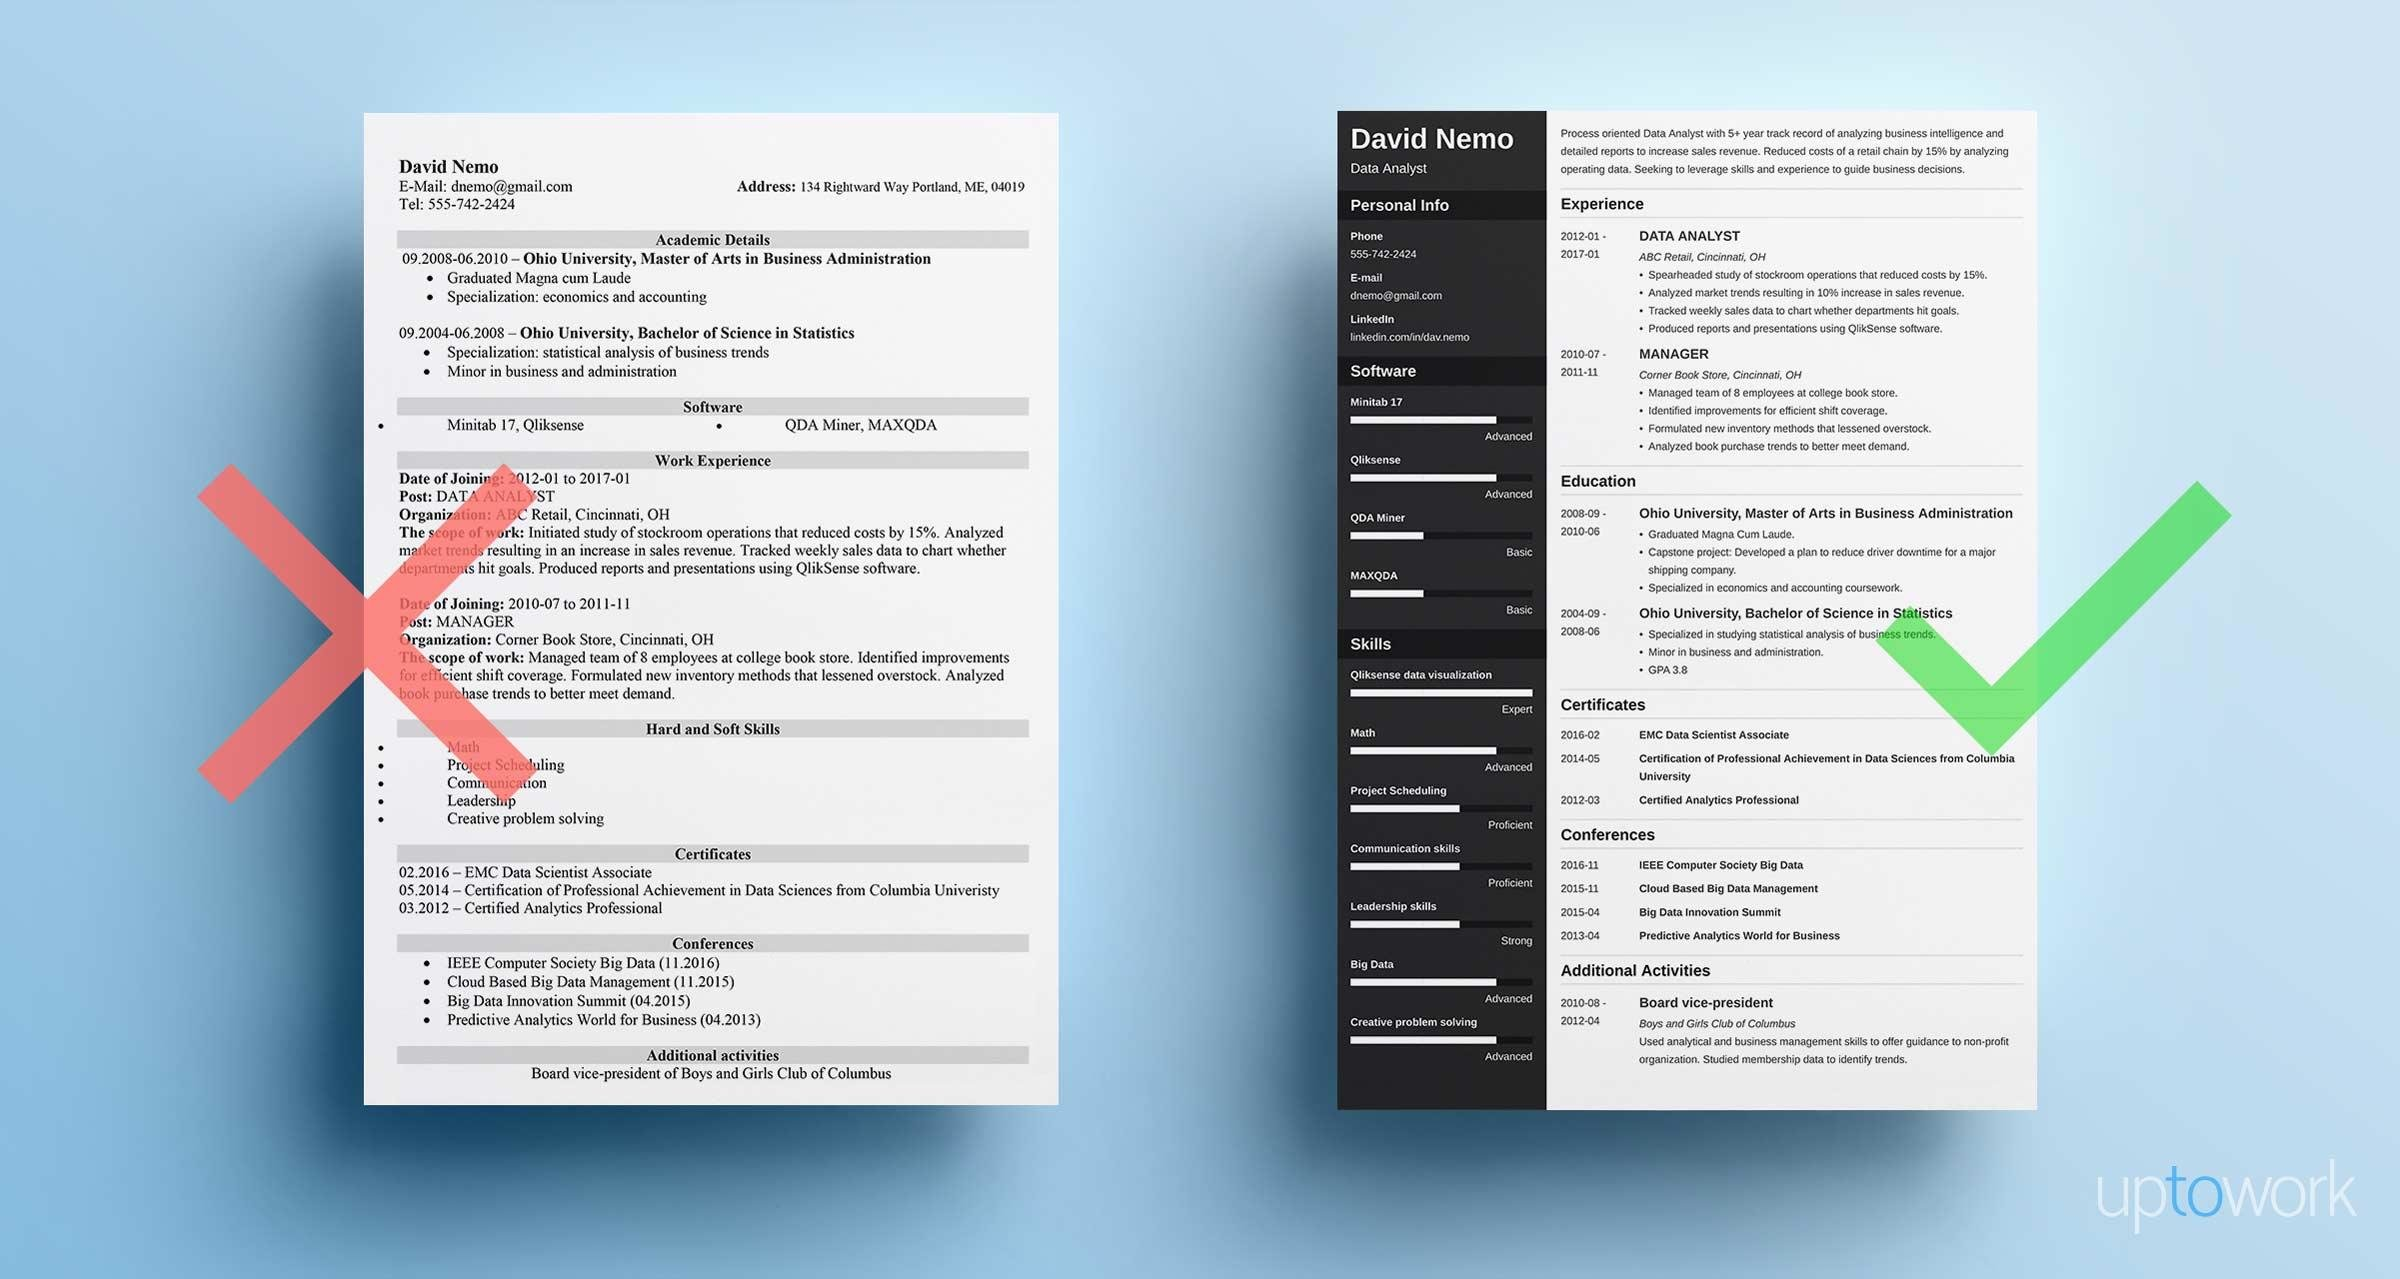 best resume builders free paid features technical writer reviews uptowork template strong Resume Technical Resume Writer Reviews